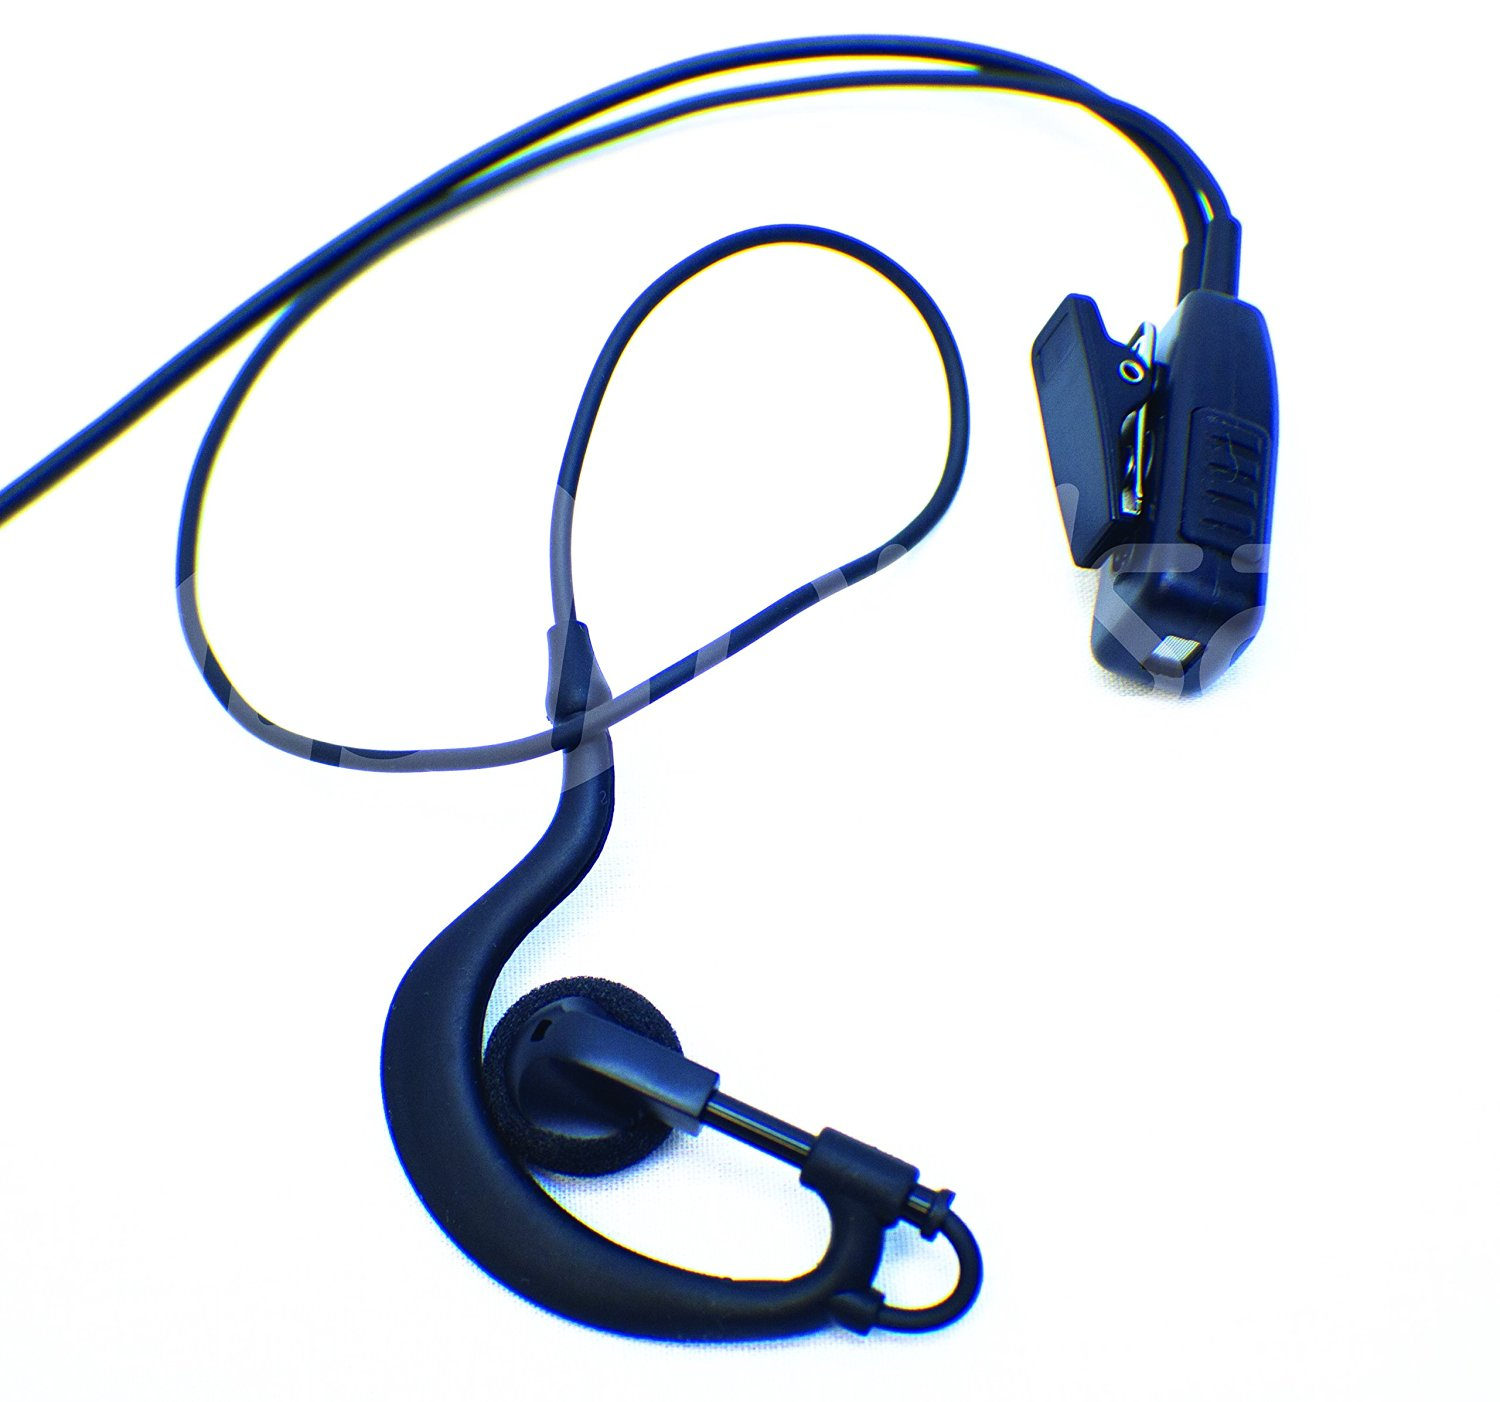 CLW 2-Pin Earpiece Headset Mic PTT For Motorola CB Radio CP88 CP040 CP100 CP110